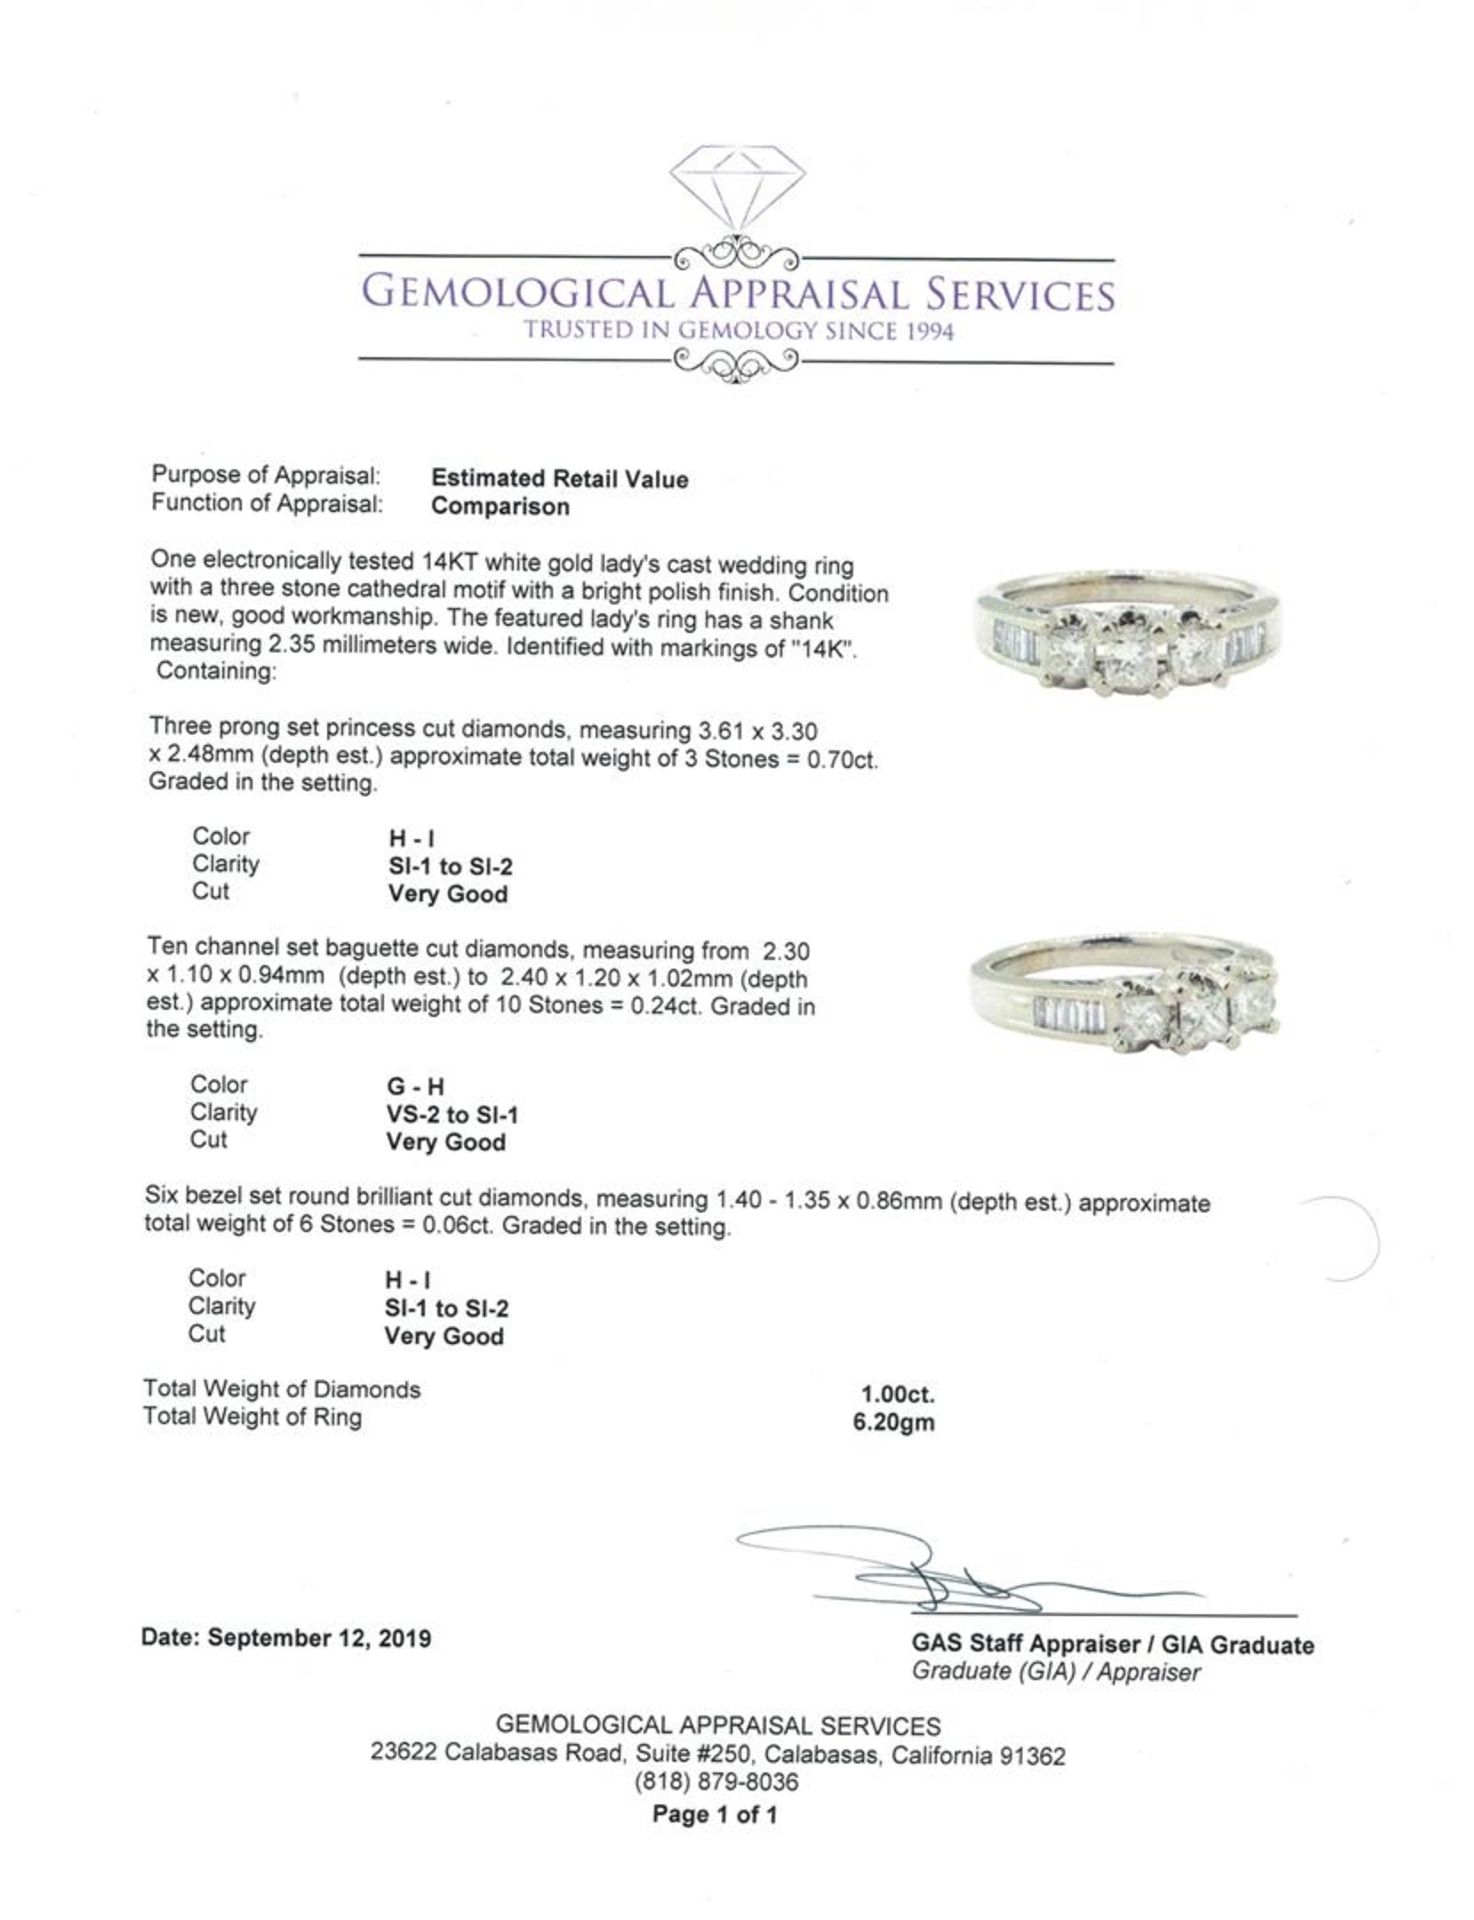 1.00 ctw Diamond Ring - 14KT White Gold - Image 5 of 5